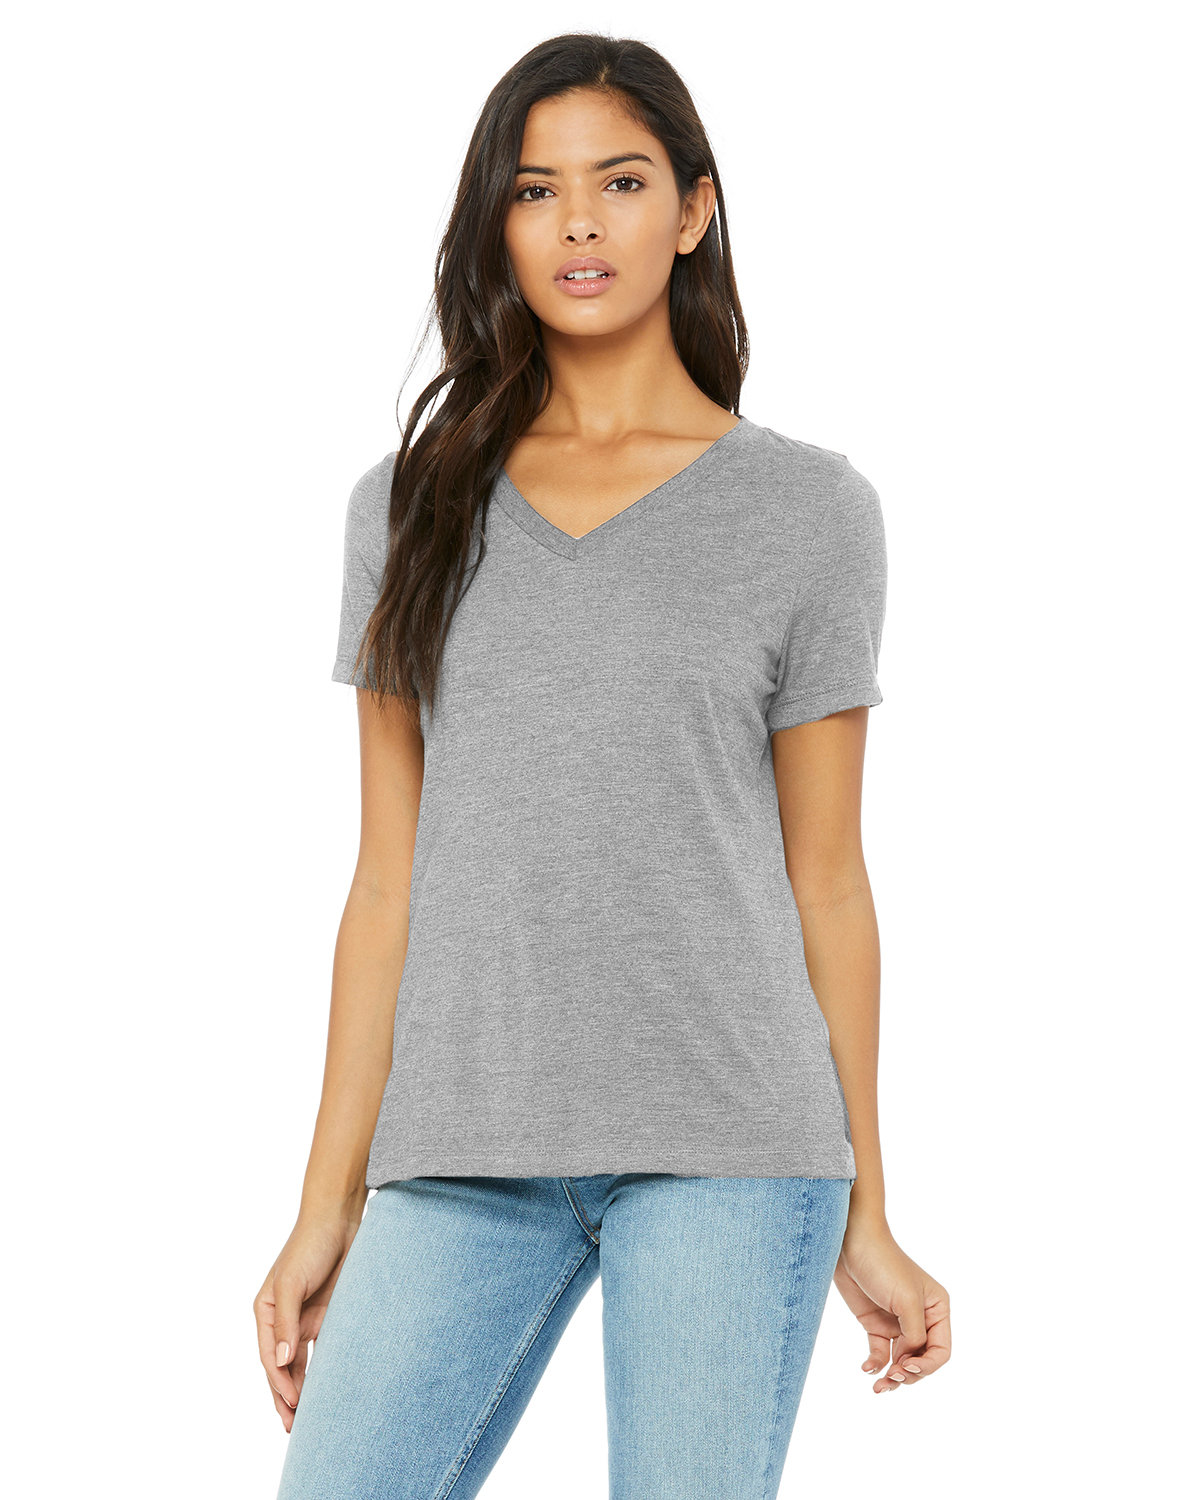 Bella + Canvas Ladies' Relaxed Jersey V-Neck T-Shirt ATHLETIC HEATHER